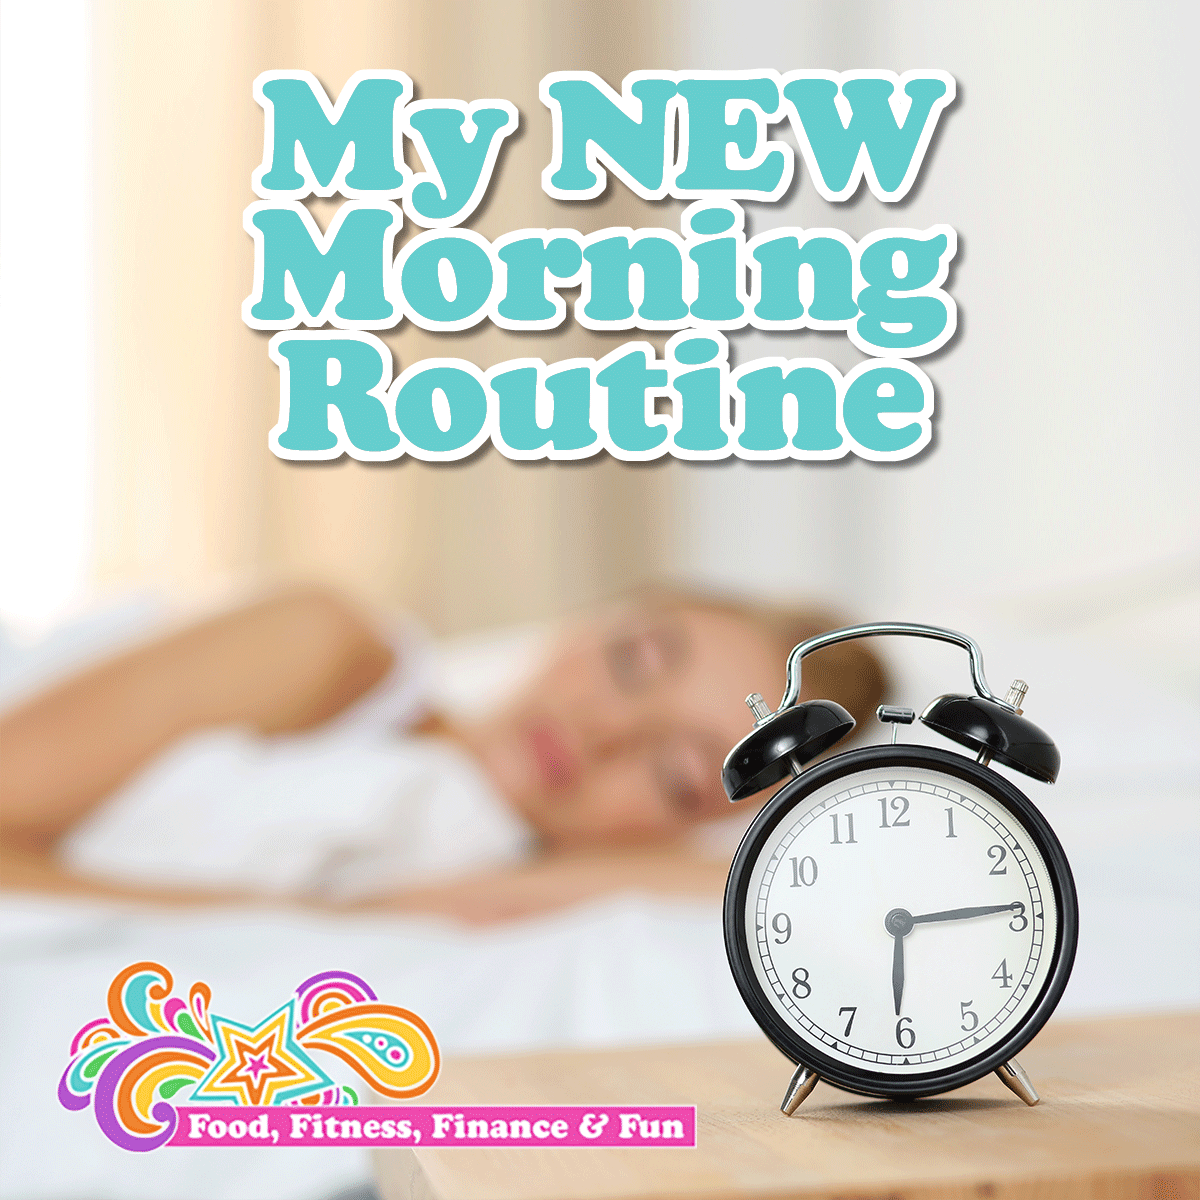 "My New Morning Routine... I have been working on morning routines for years. I want something that gets a lot of ""bang for my buck"" and sets me up for successes all day long without having to wake up TOO early. I have been crafting my current routine for the past 2 months. Fine tuning it to see what is effective AND efficient, and I finally came up with one."